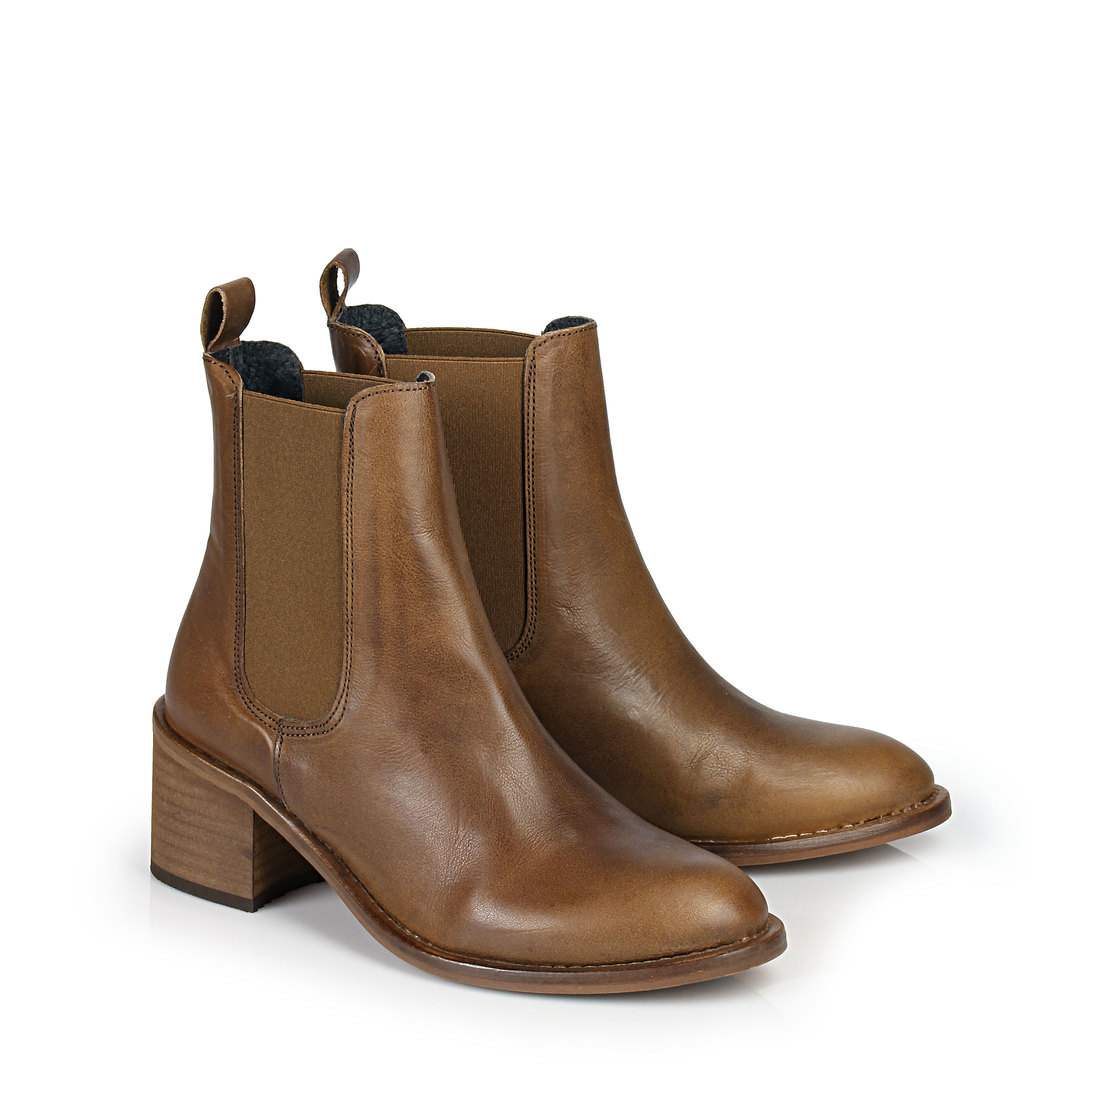 buffalo ankle boots in brown buy online in buffalo online shop buffalo online shop. Black Bedroom Furniture Sets. Home Design Ideas